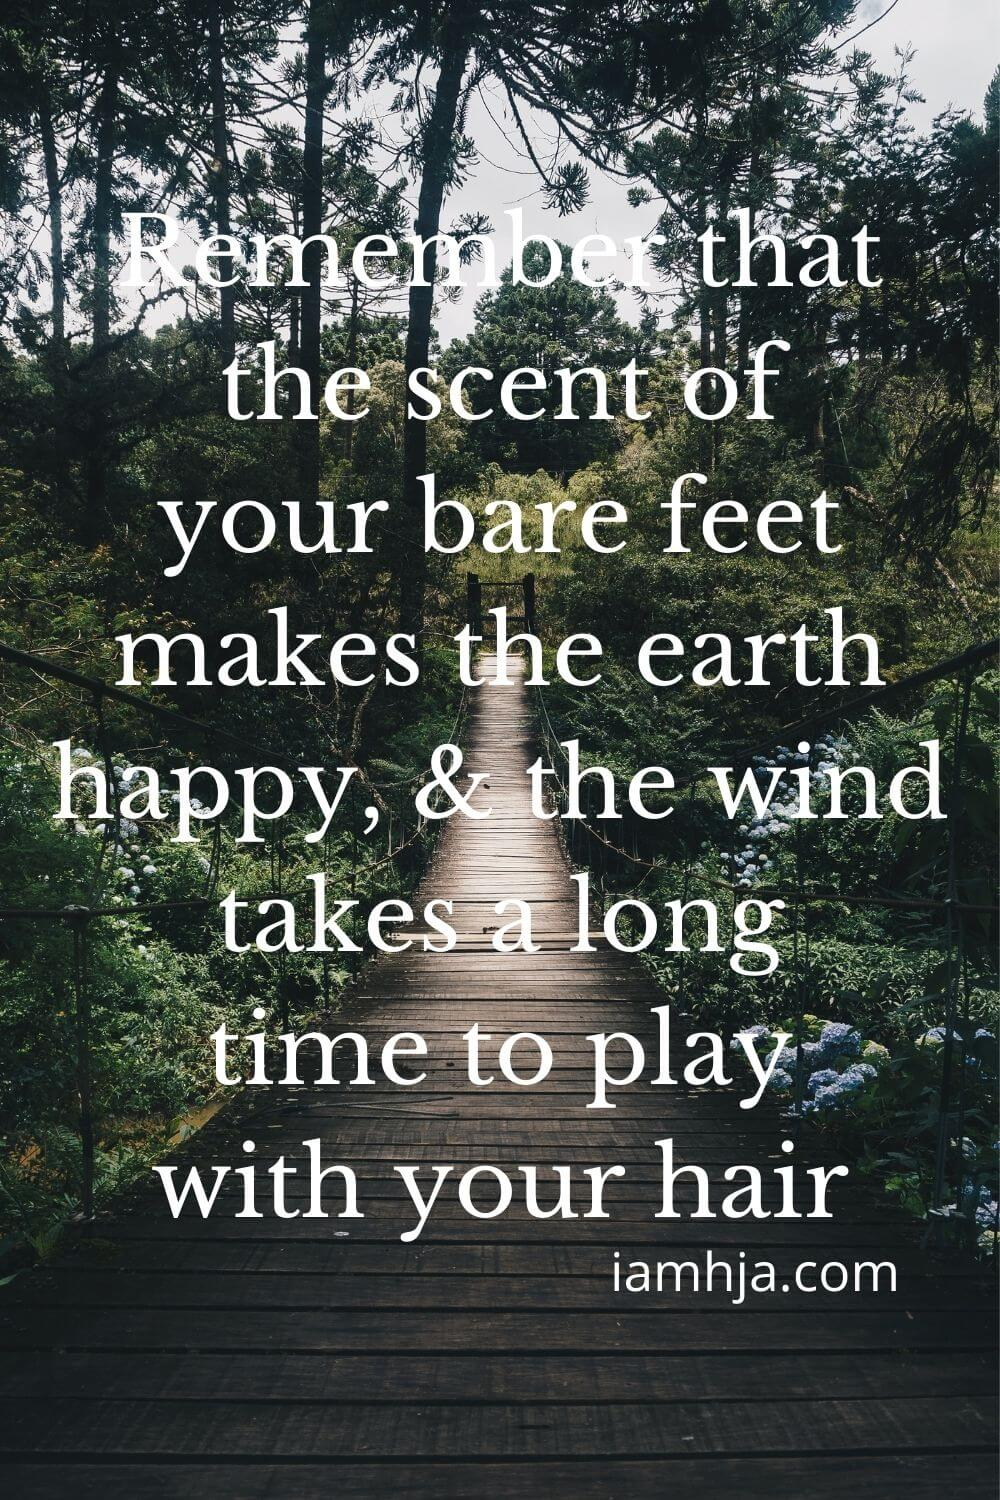 Remember that the scent of your bare feet makes the earth happy, and the wind takes a long time to play with your hair.